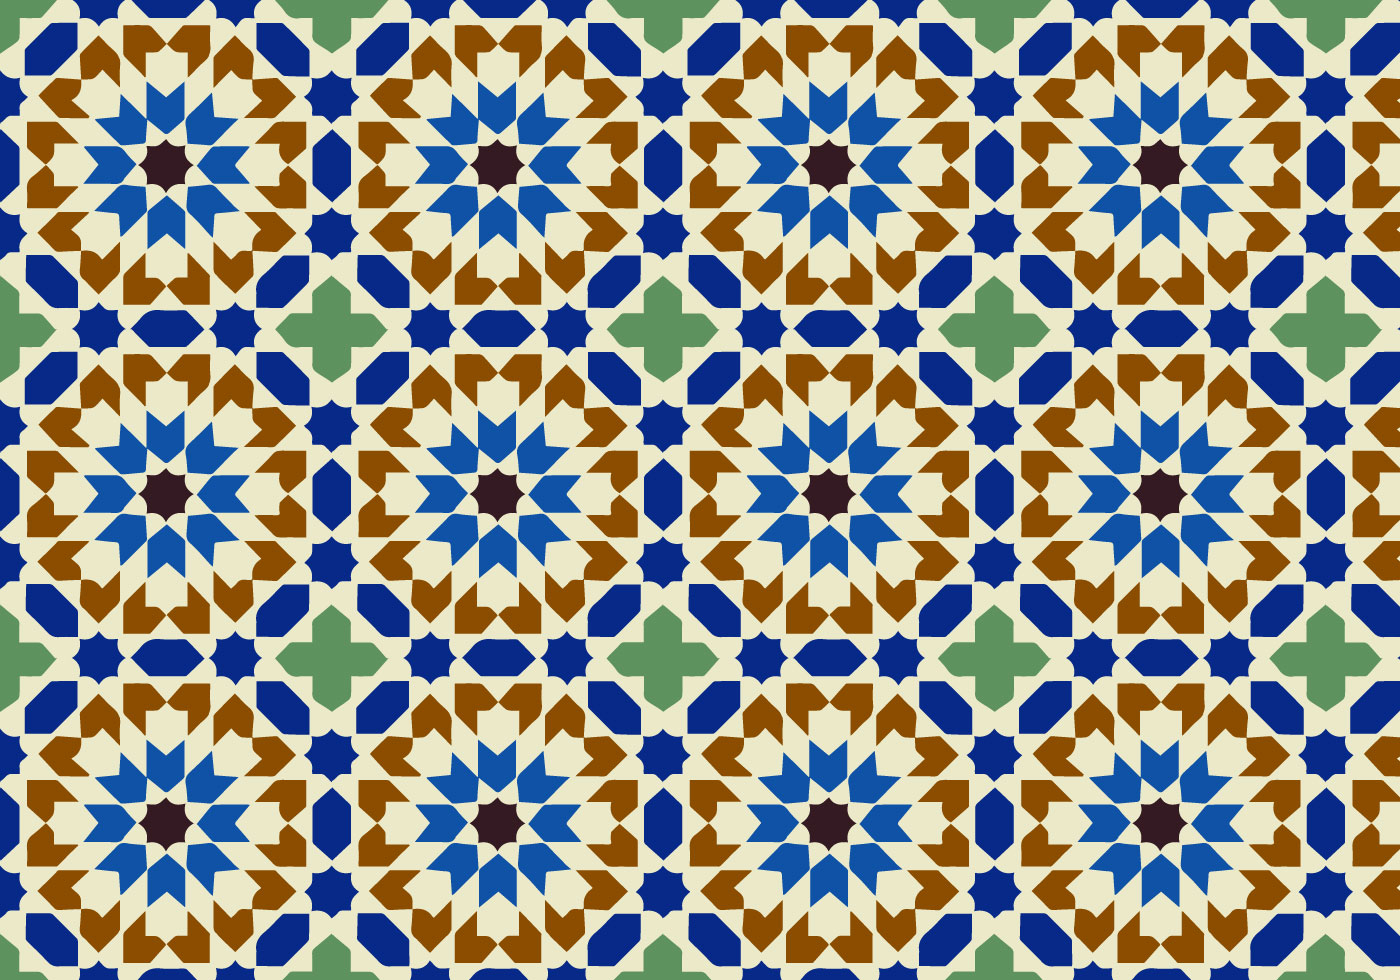 Moroccan Pattern Free Vector Art - (17168 Free Downloads) - Free Printable Moroccan Pattern